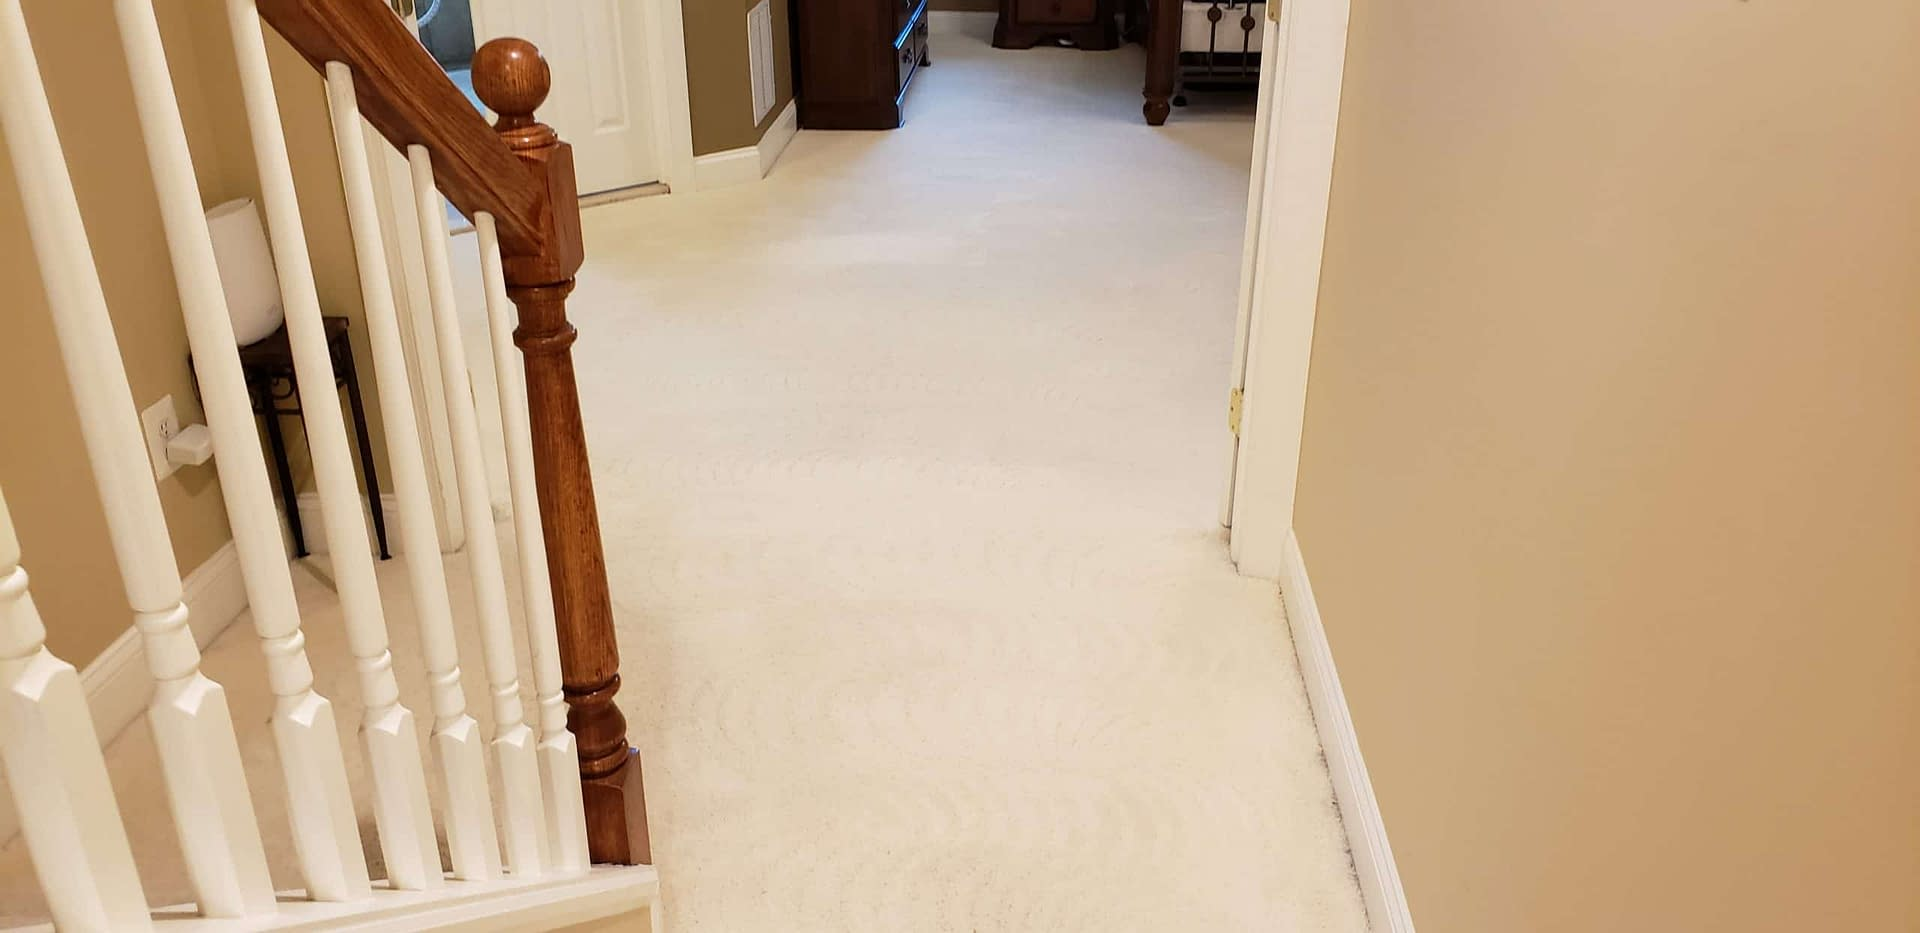 Chalfont, PA hallway carpet cleaning